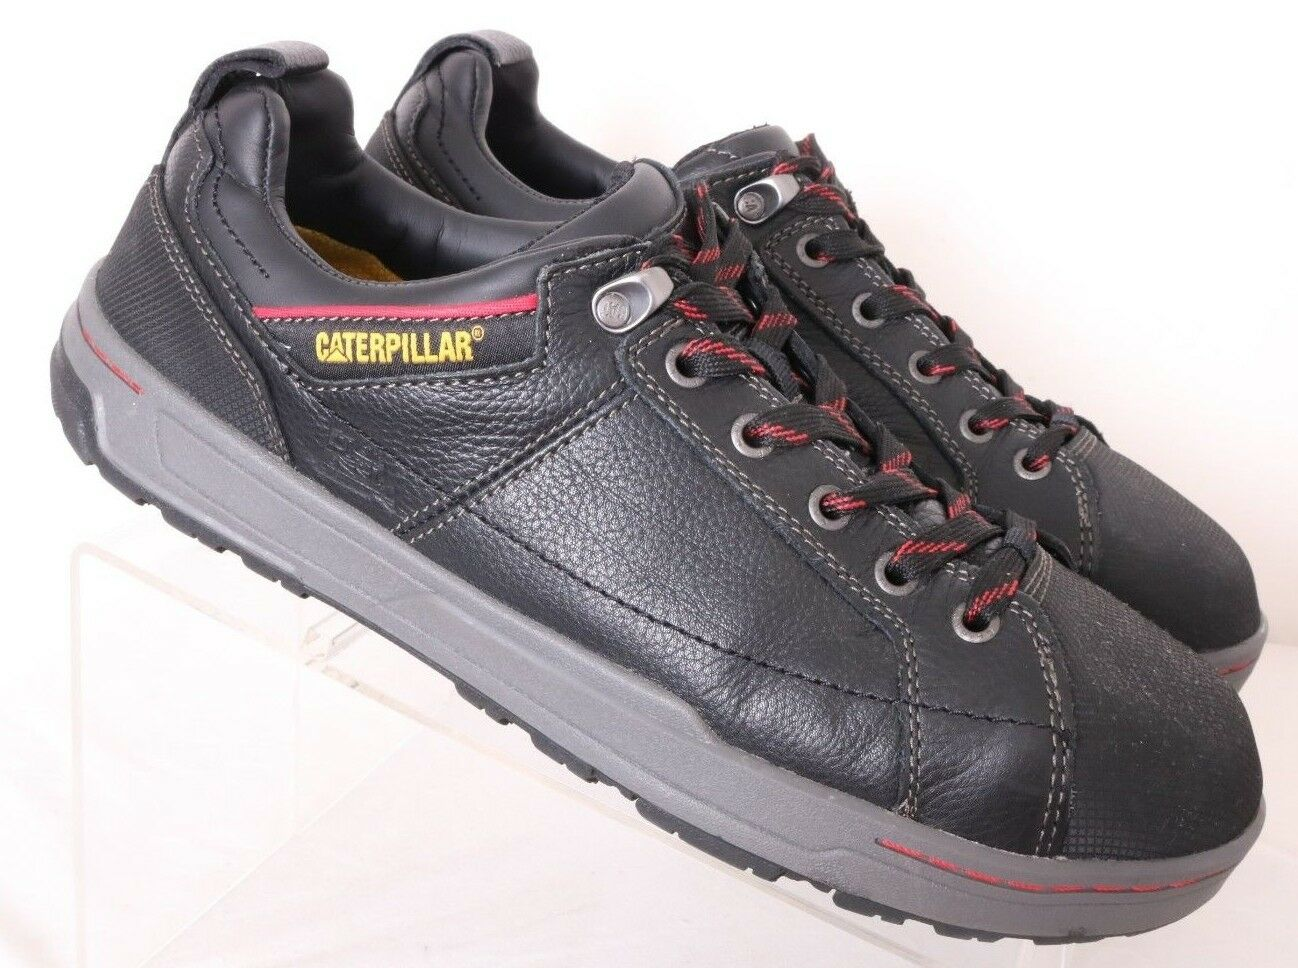 Caterpillar CAT Brode Steel Toe EH Black Work Safety Sneakers Men's US 10